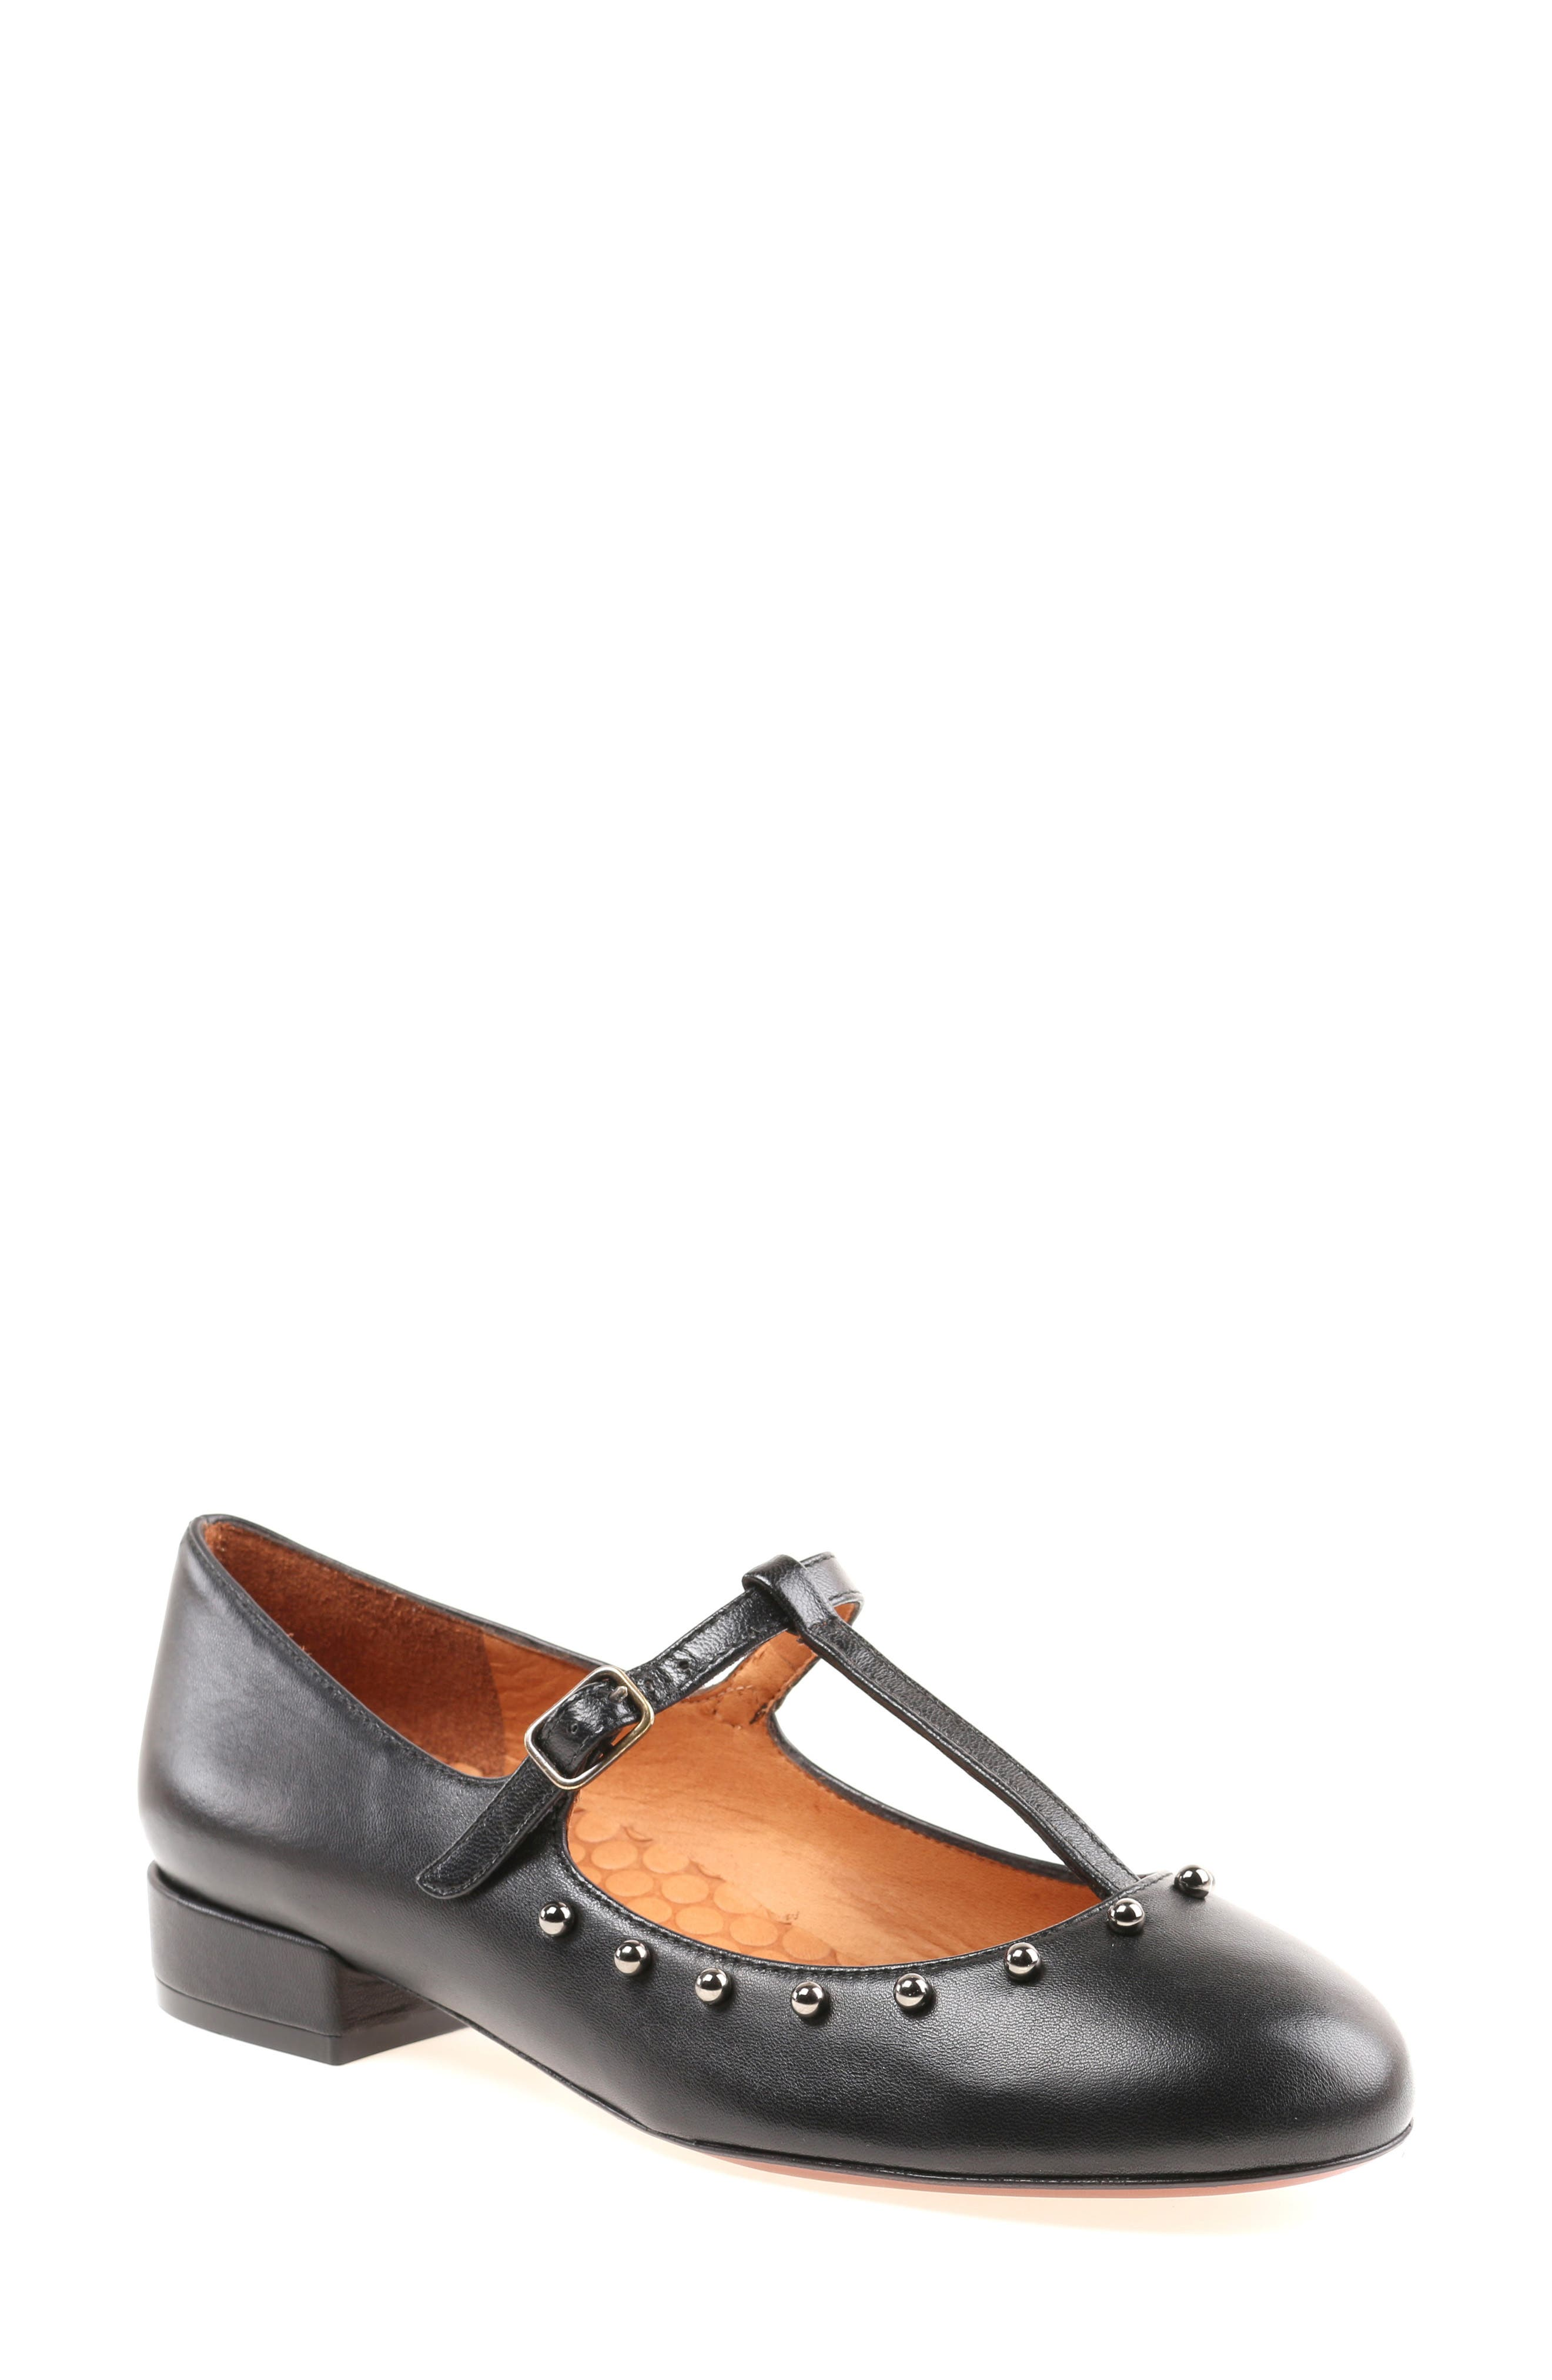 Alternate Image 1 Selected - Chie Mihara Raski T-Strap Flat (Women)